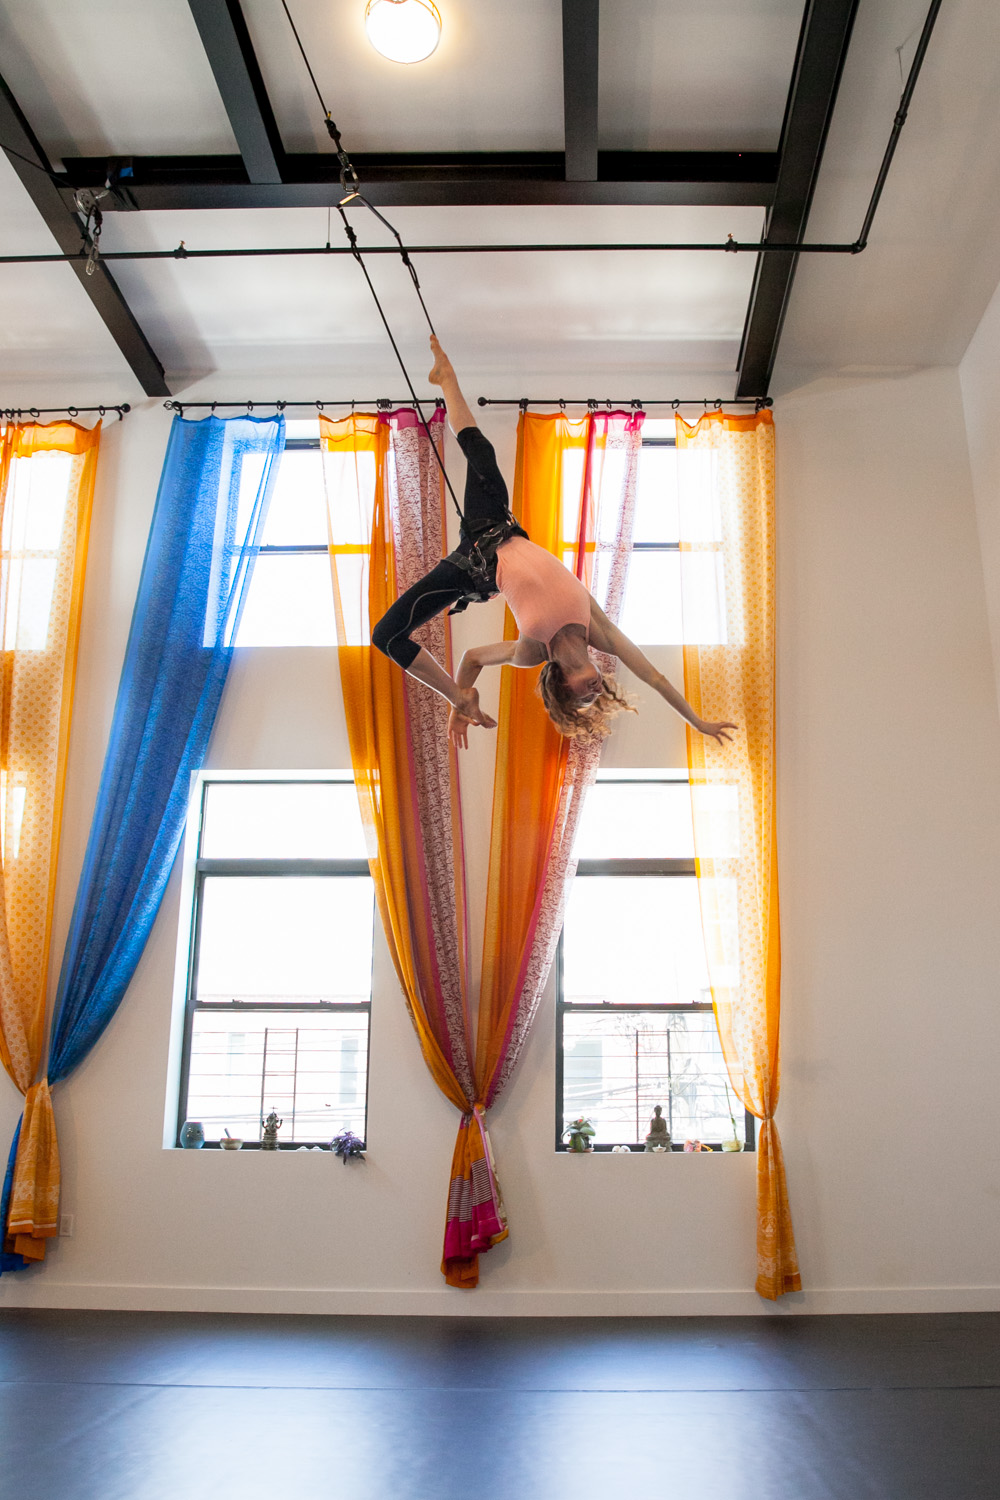 FLYING DANCE - WHETHER YOU'RE A NOVICE ADVENTURER OR PROFESSIONAL PERFORMER. WE TEACH FLYING HARNESS FOR YOUR SKILL LEVEL; FOR AUDITION TRAINING, OR JUST FOR A FUN EXPERIENCE.CLASS IS 90 MINUTES FOR 3 OR MORE, 60 MINUTES FOR 2 OR LESS.ALSO AVAILABLE AS A PRIVATE OR SEMI-PRIVATE GROUP SESSION UP TO 6 PEOPLE.